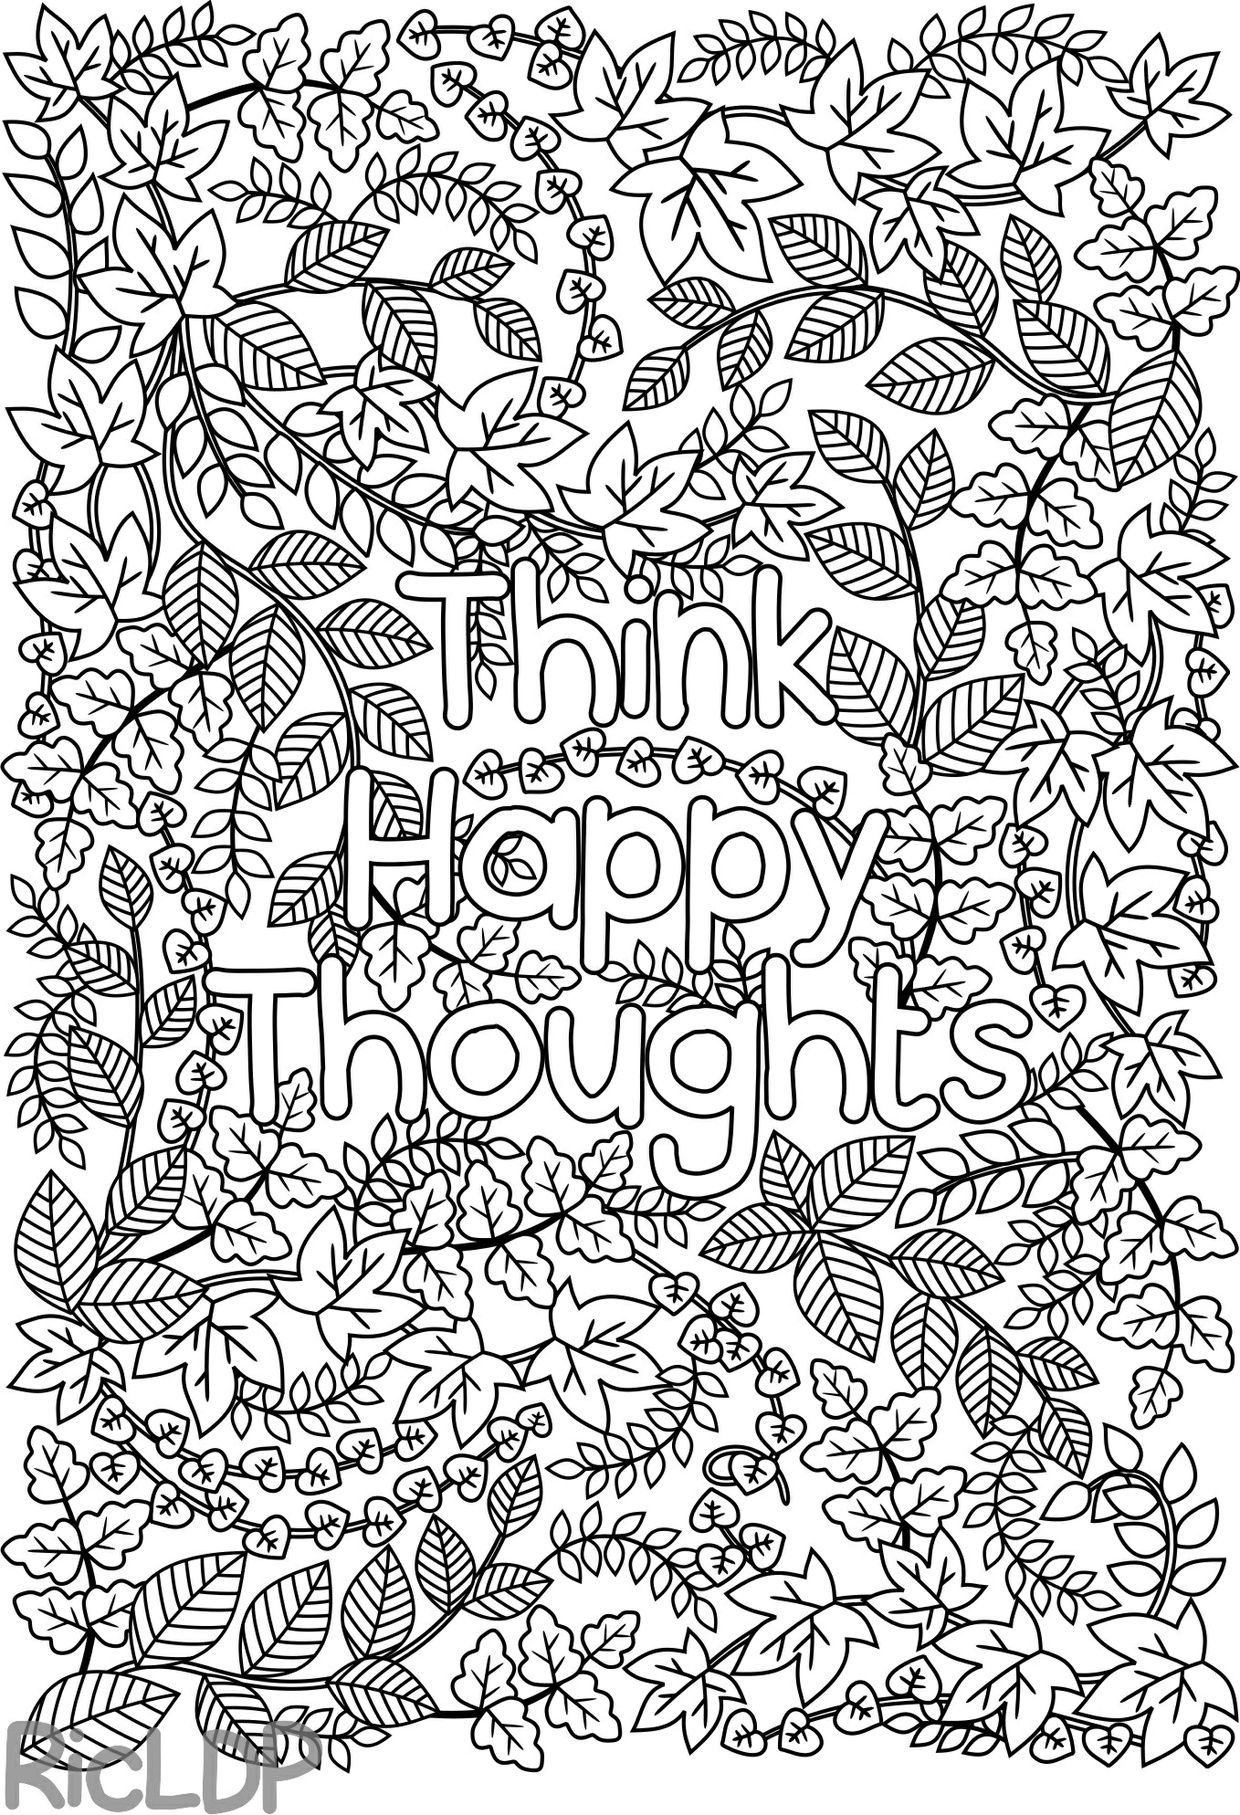 Think Happy Thoughts Coloring Page For Grown Ups More